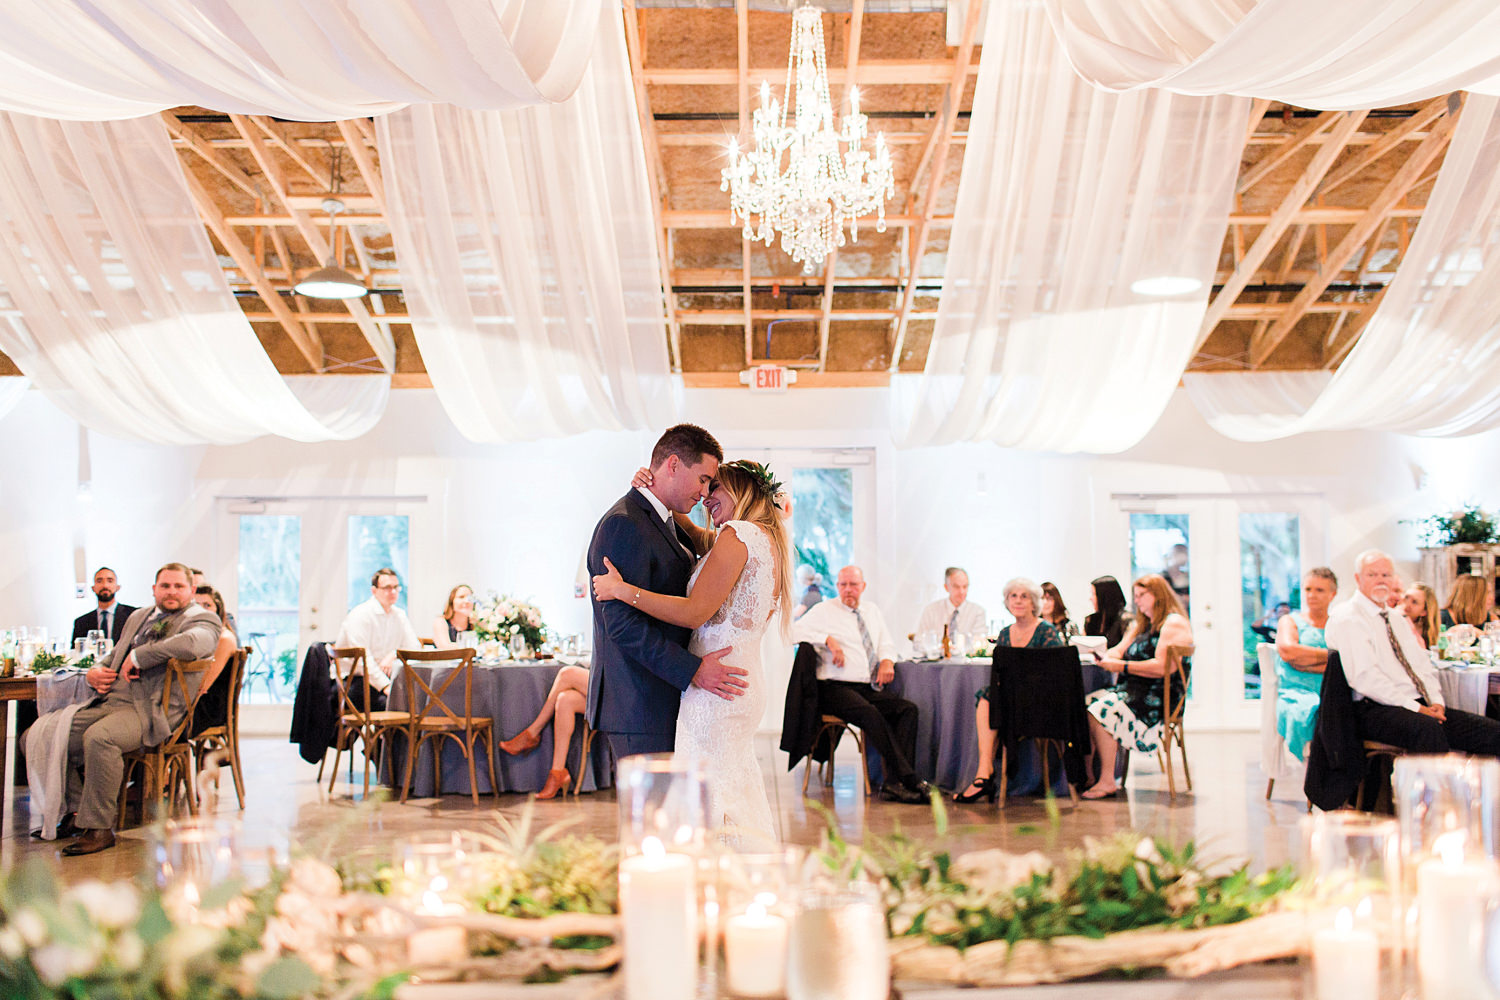 Bride and grooms first dance in a barn wedding venue.